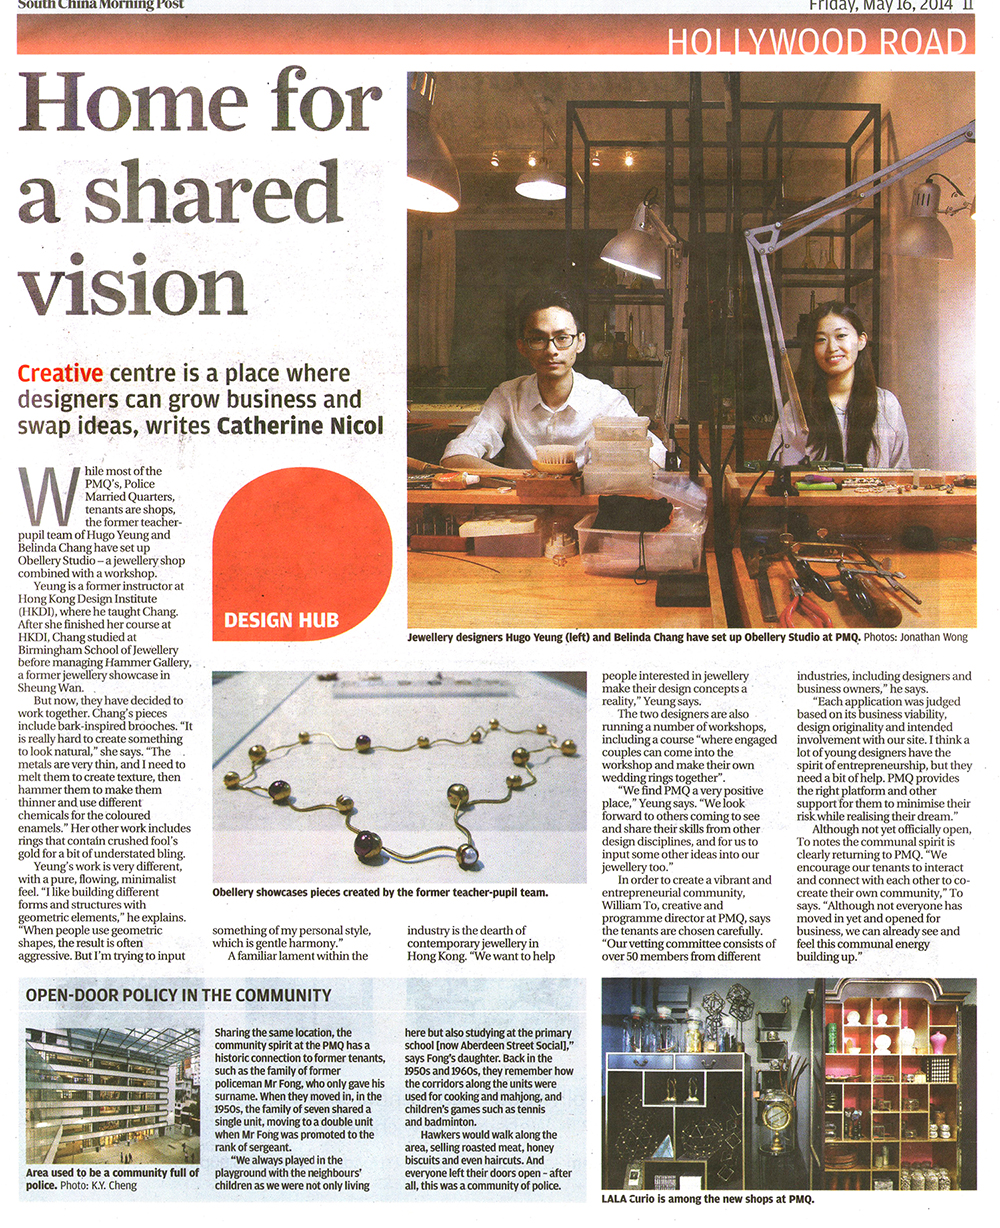 SOUTH CHINA MORNING POST - HOME FOR A SHARED VISION